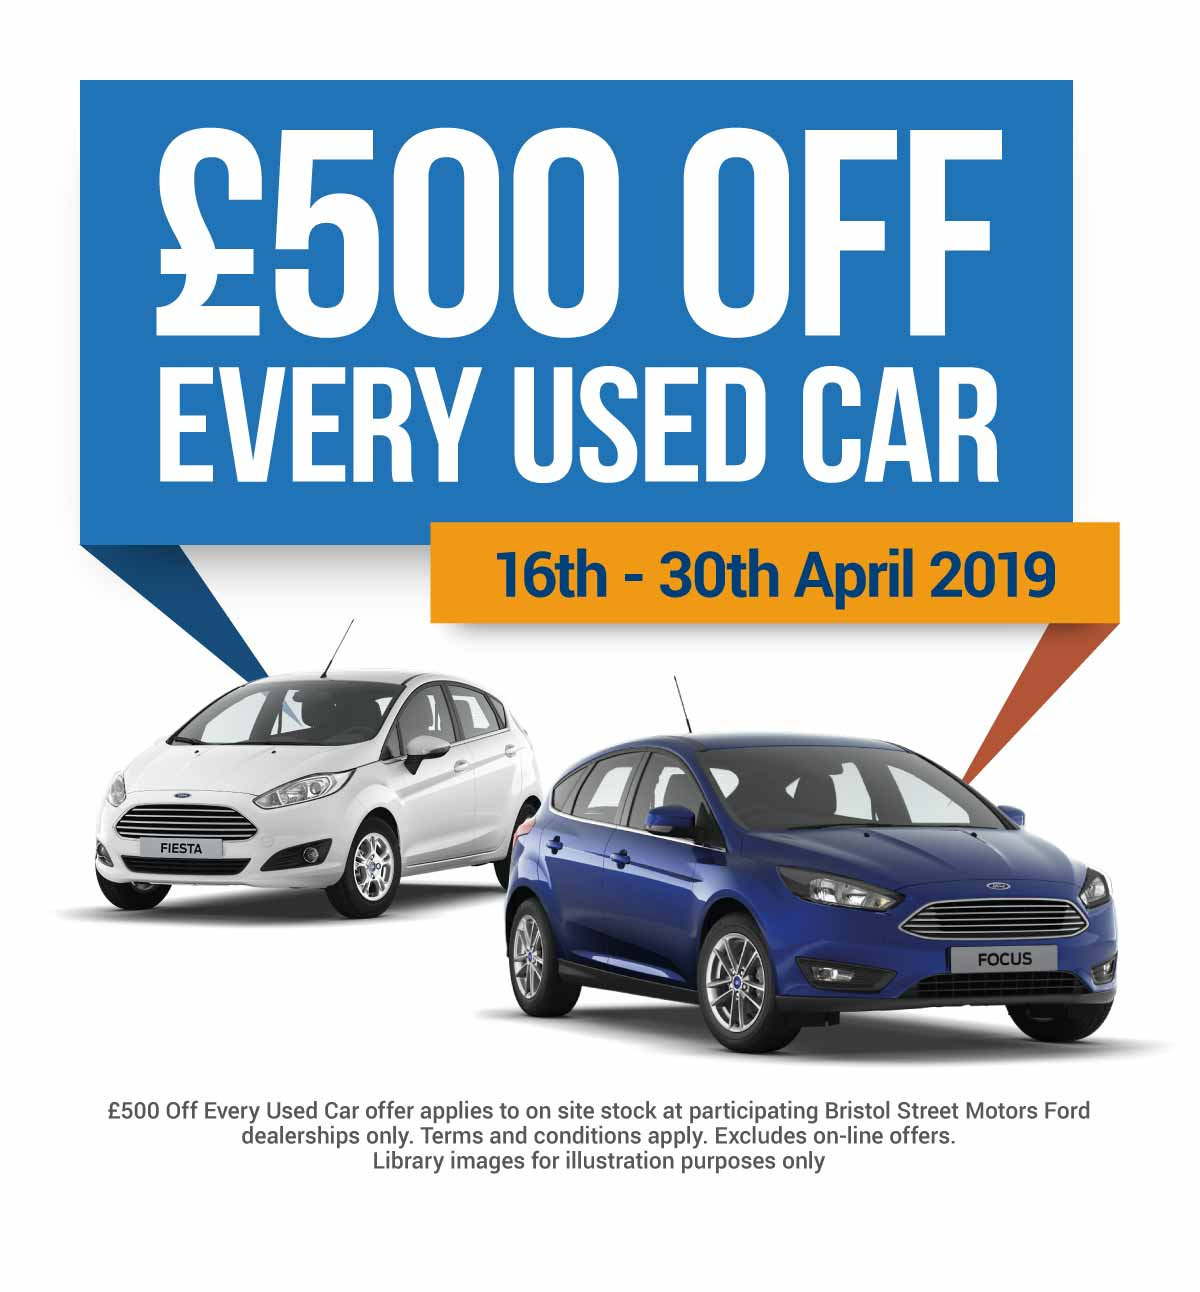 BSM Ford Used �500 Off Event